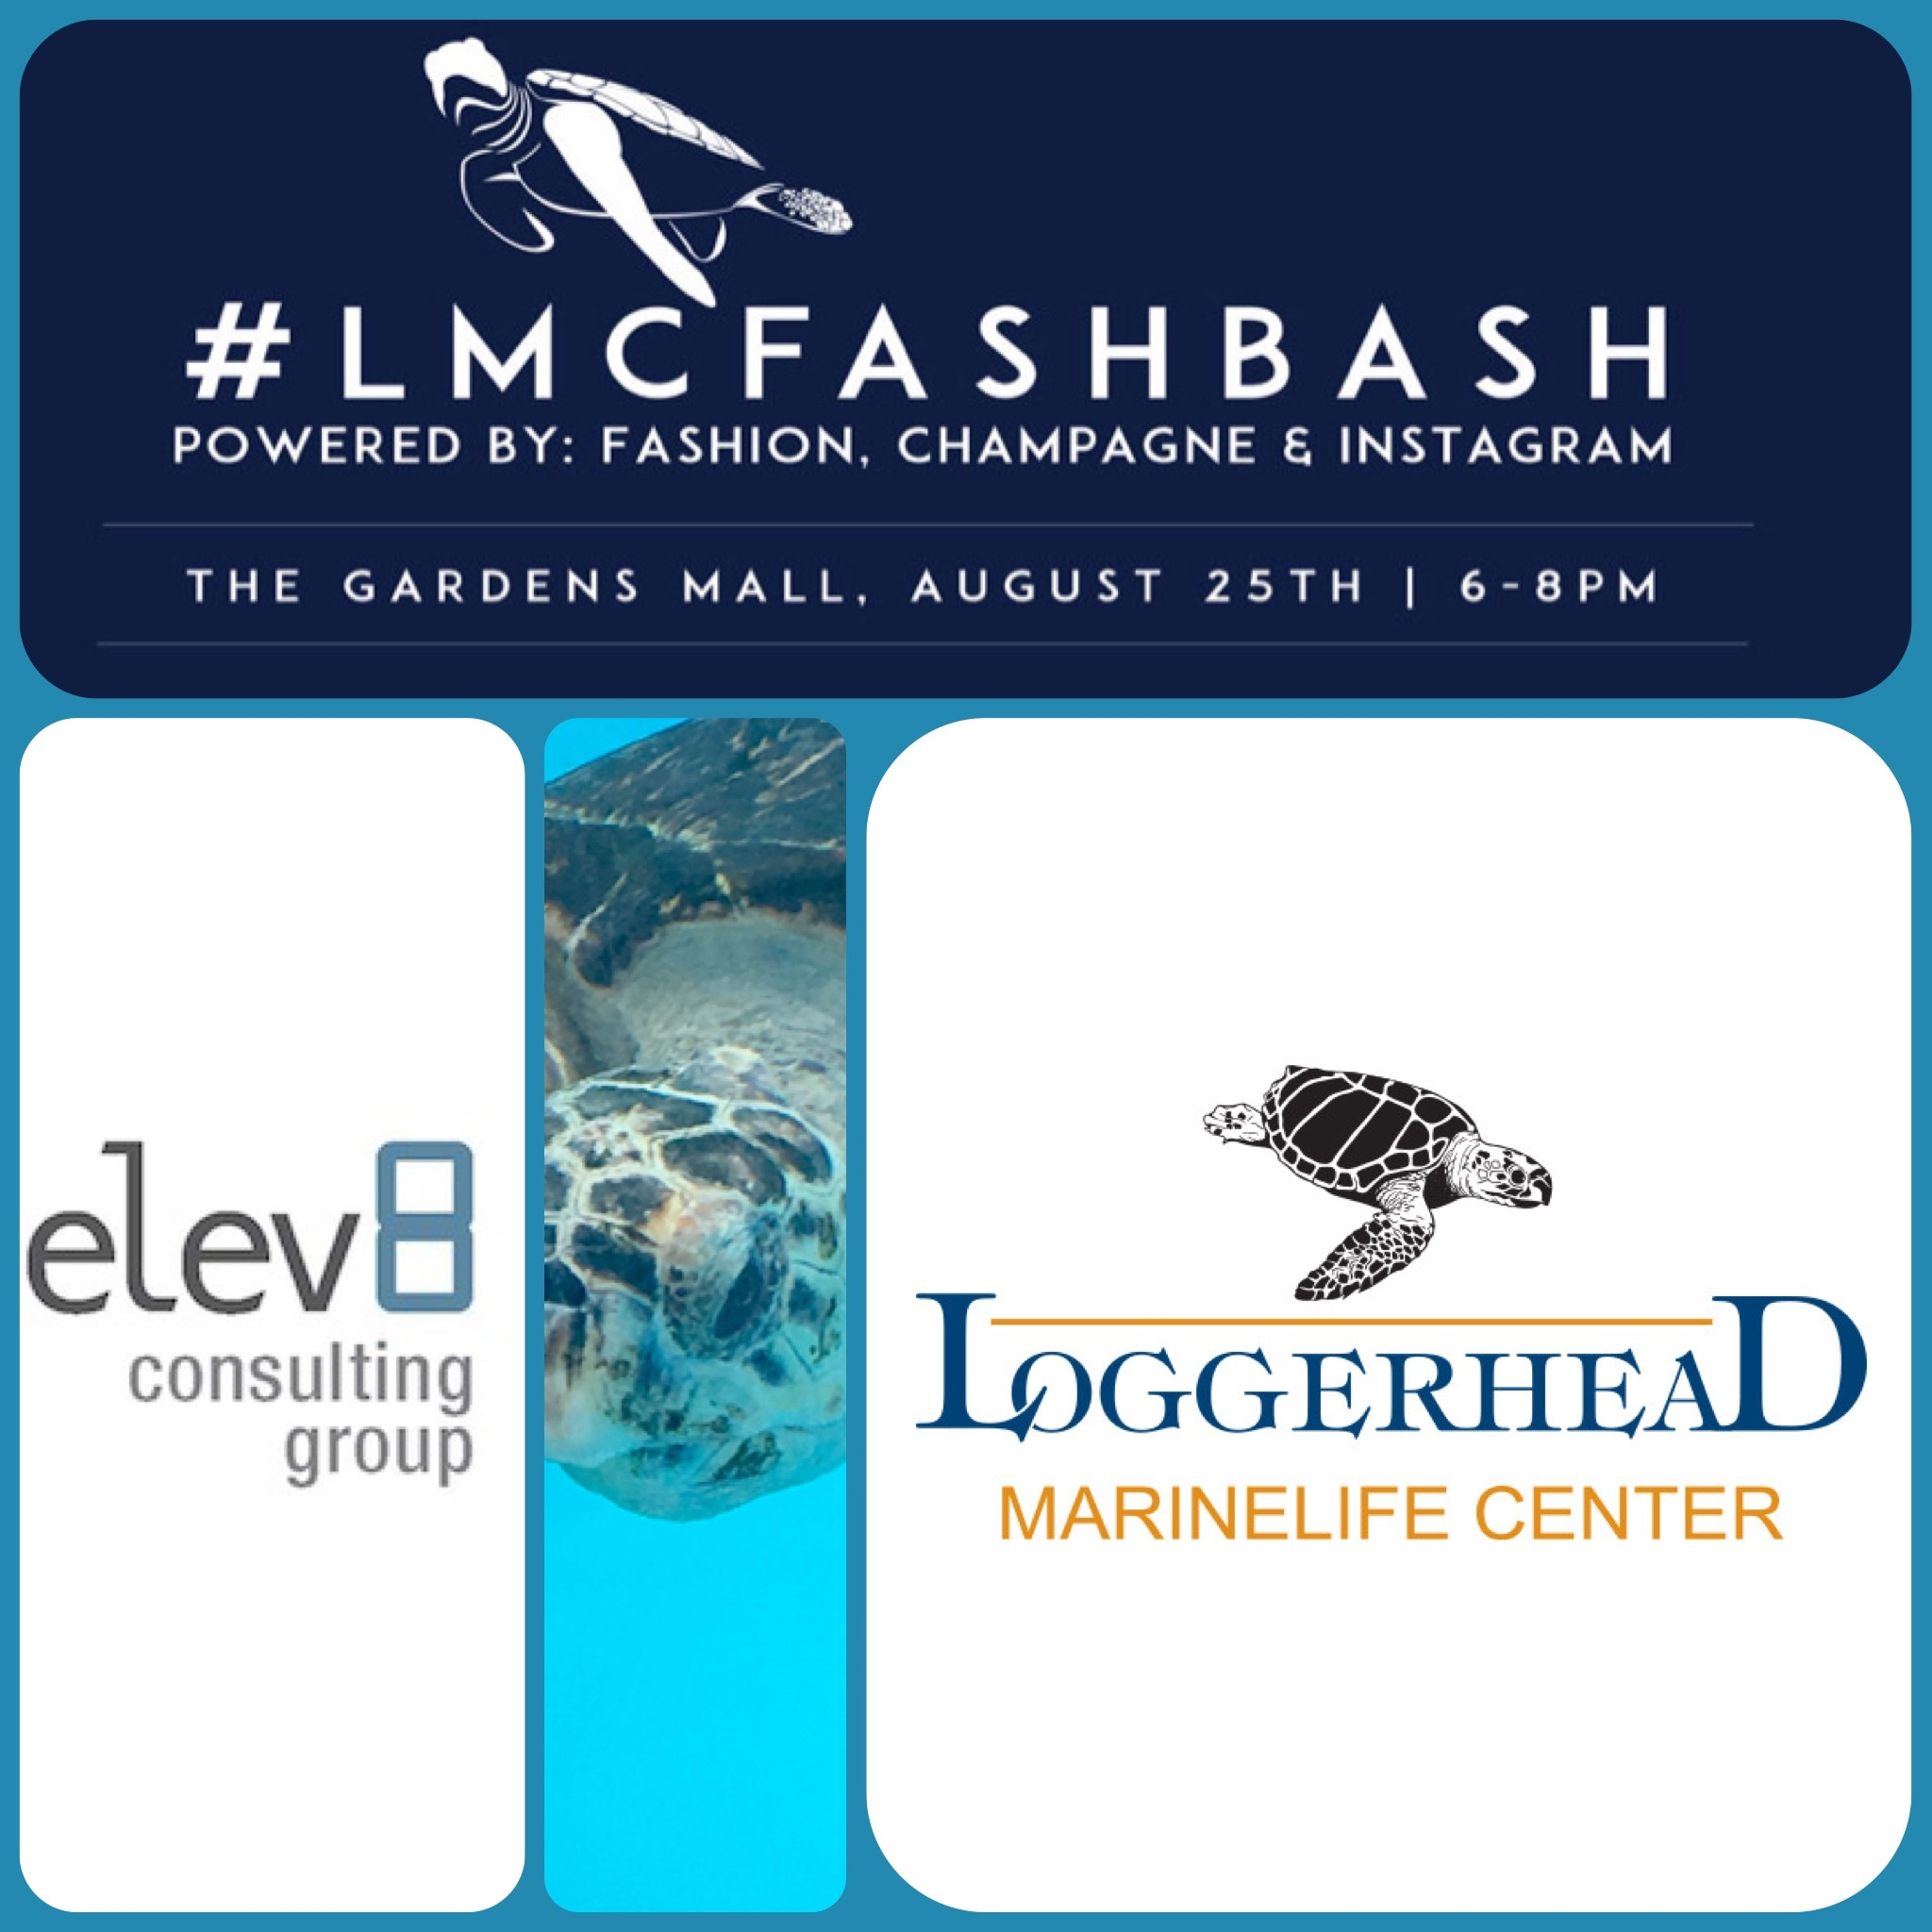 Saving Marine Life In Style! Elev8 Consulting Group Sponsors The 3rd Annual #LMCFashBash To Benefit Loggerhead Marinelife Center